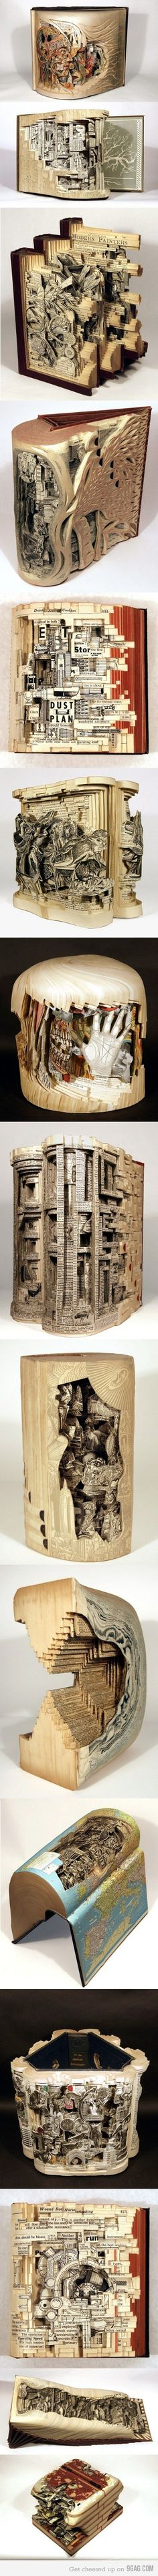 buchkunst. Im sad to see books used like this,  but what an amazing use and talent!